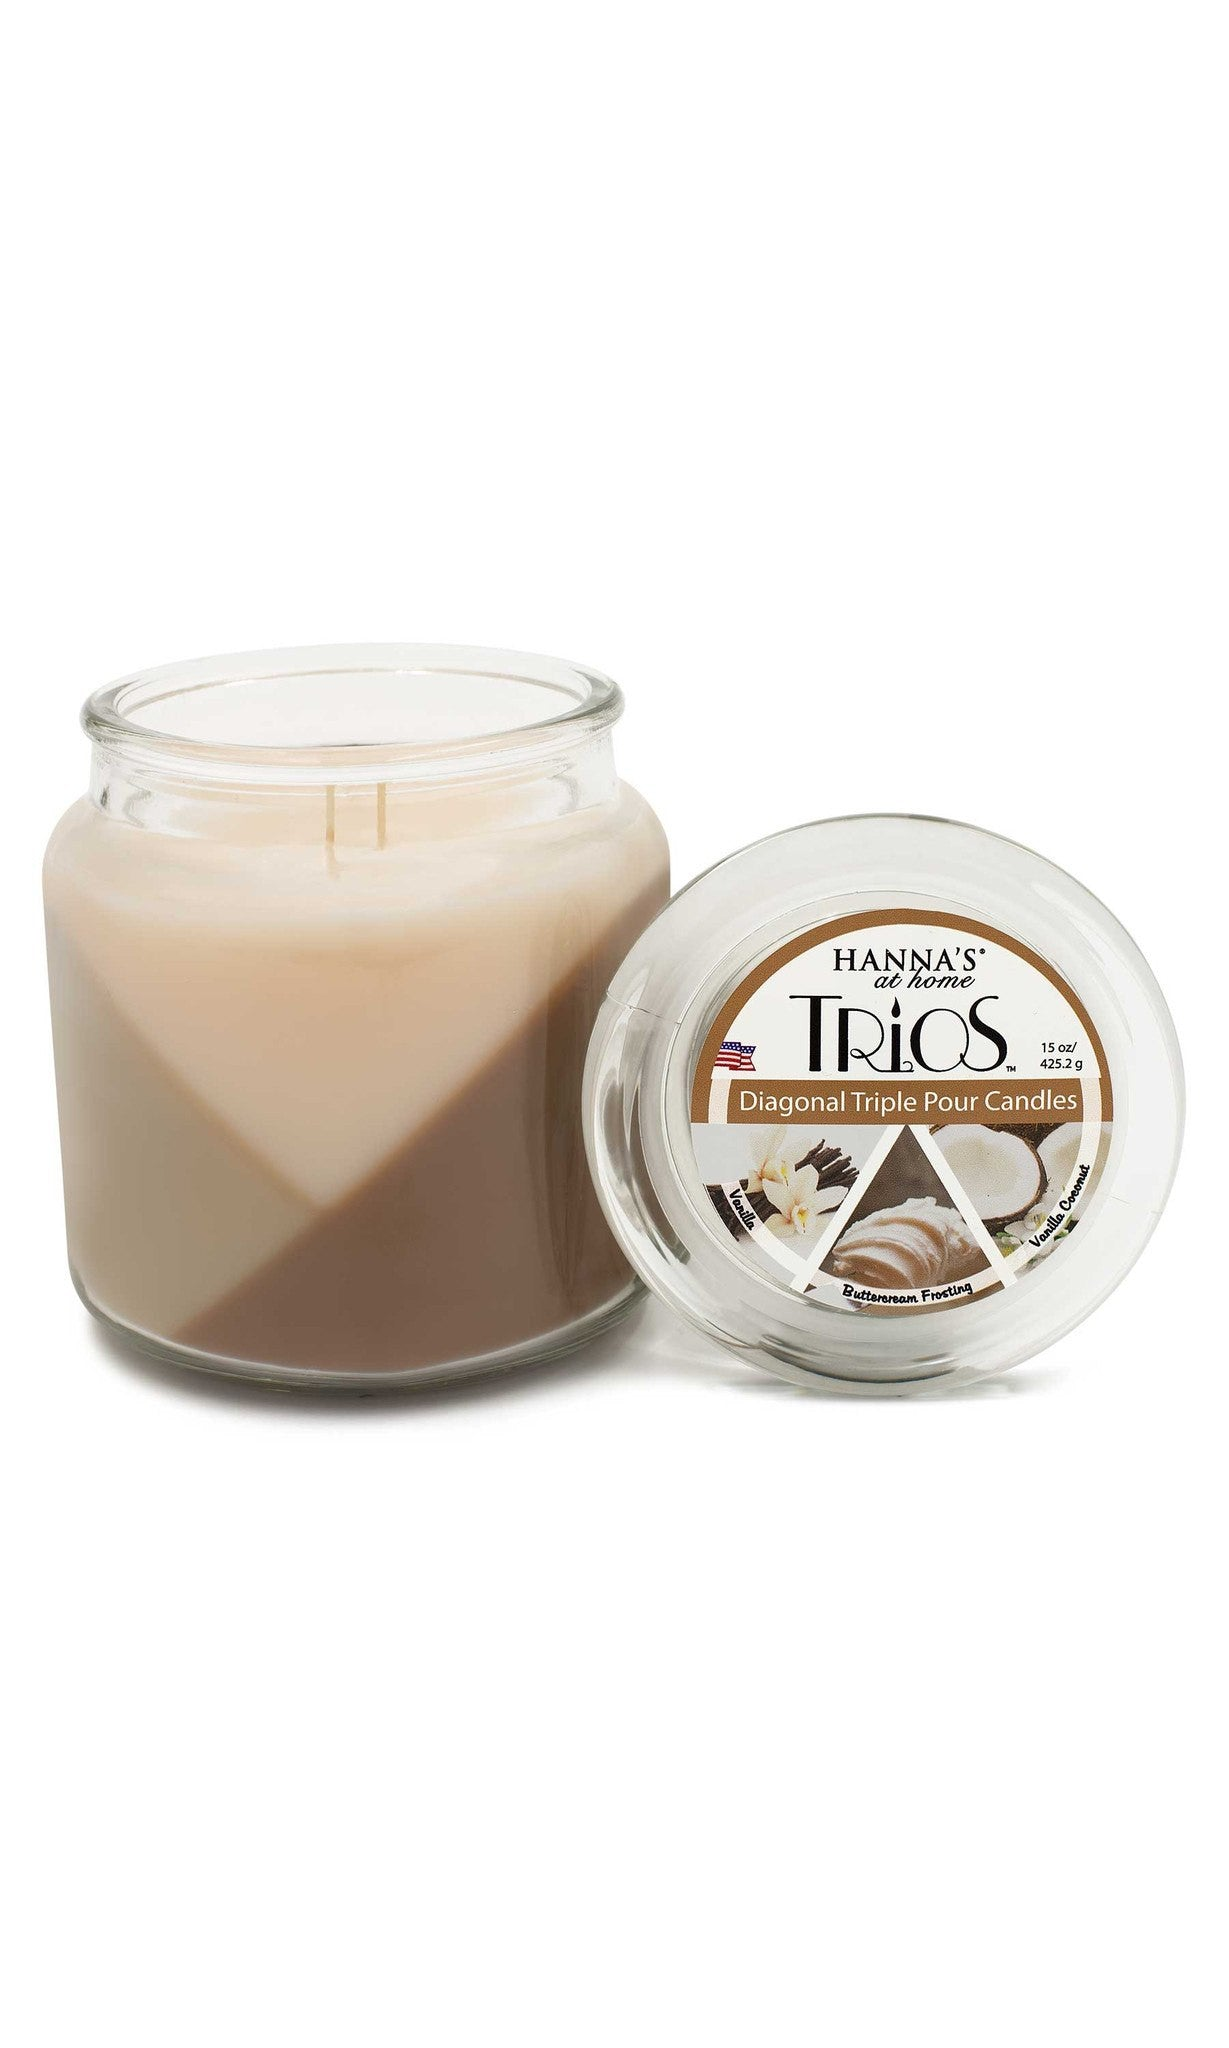 Trios Triple Pour Vanilla Scented Candle - Candlemart.com - 3